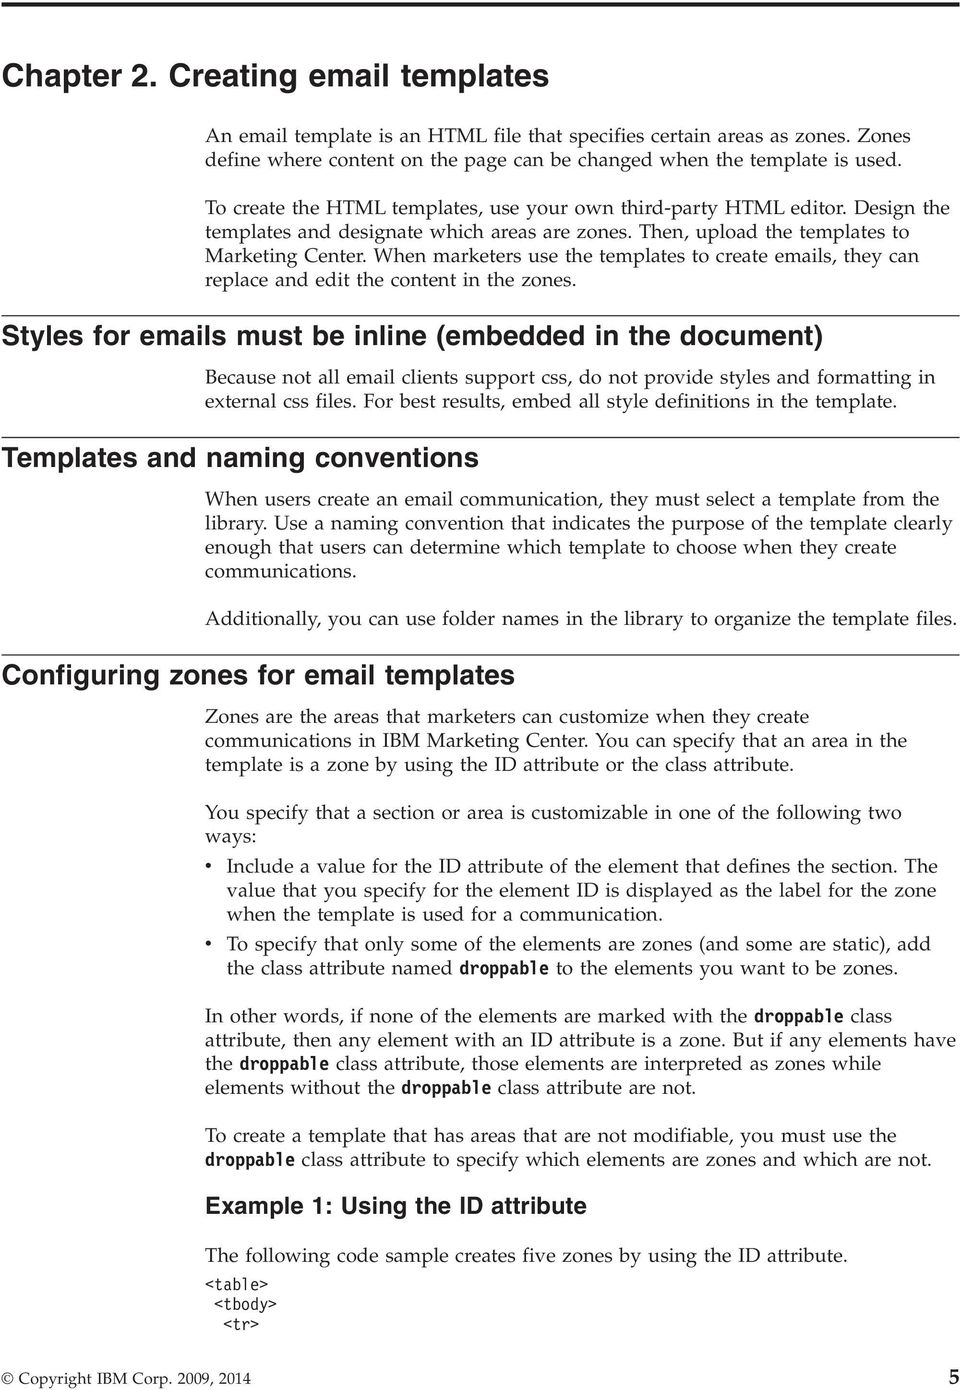 When marketers use the templates to create emails, they can replace and edit the content in the zones.